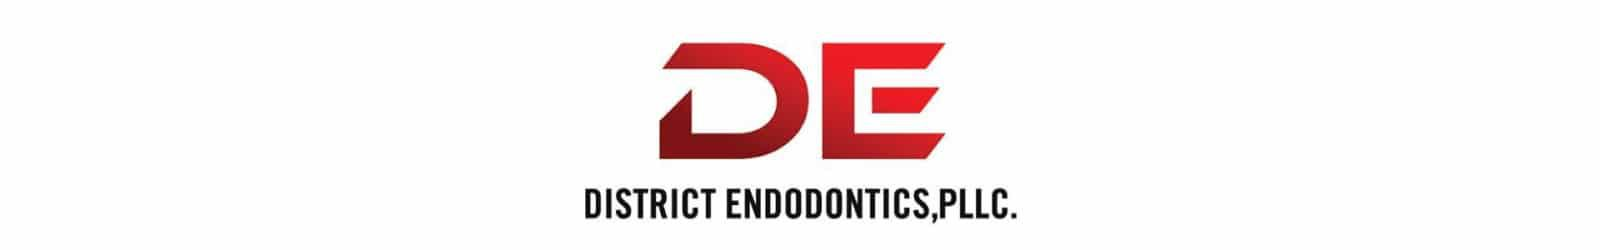 district endodontics logo design example